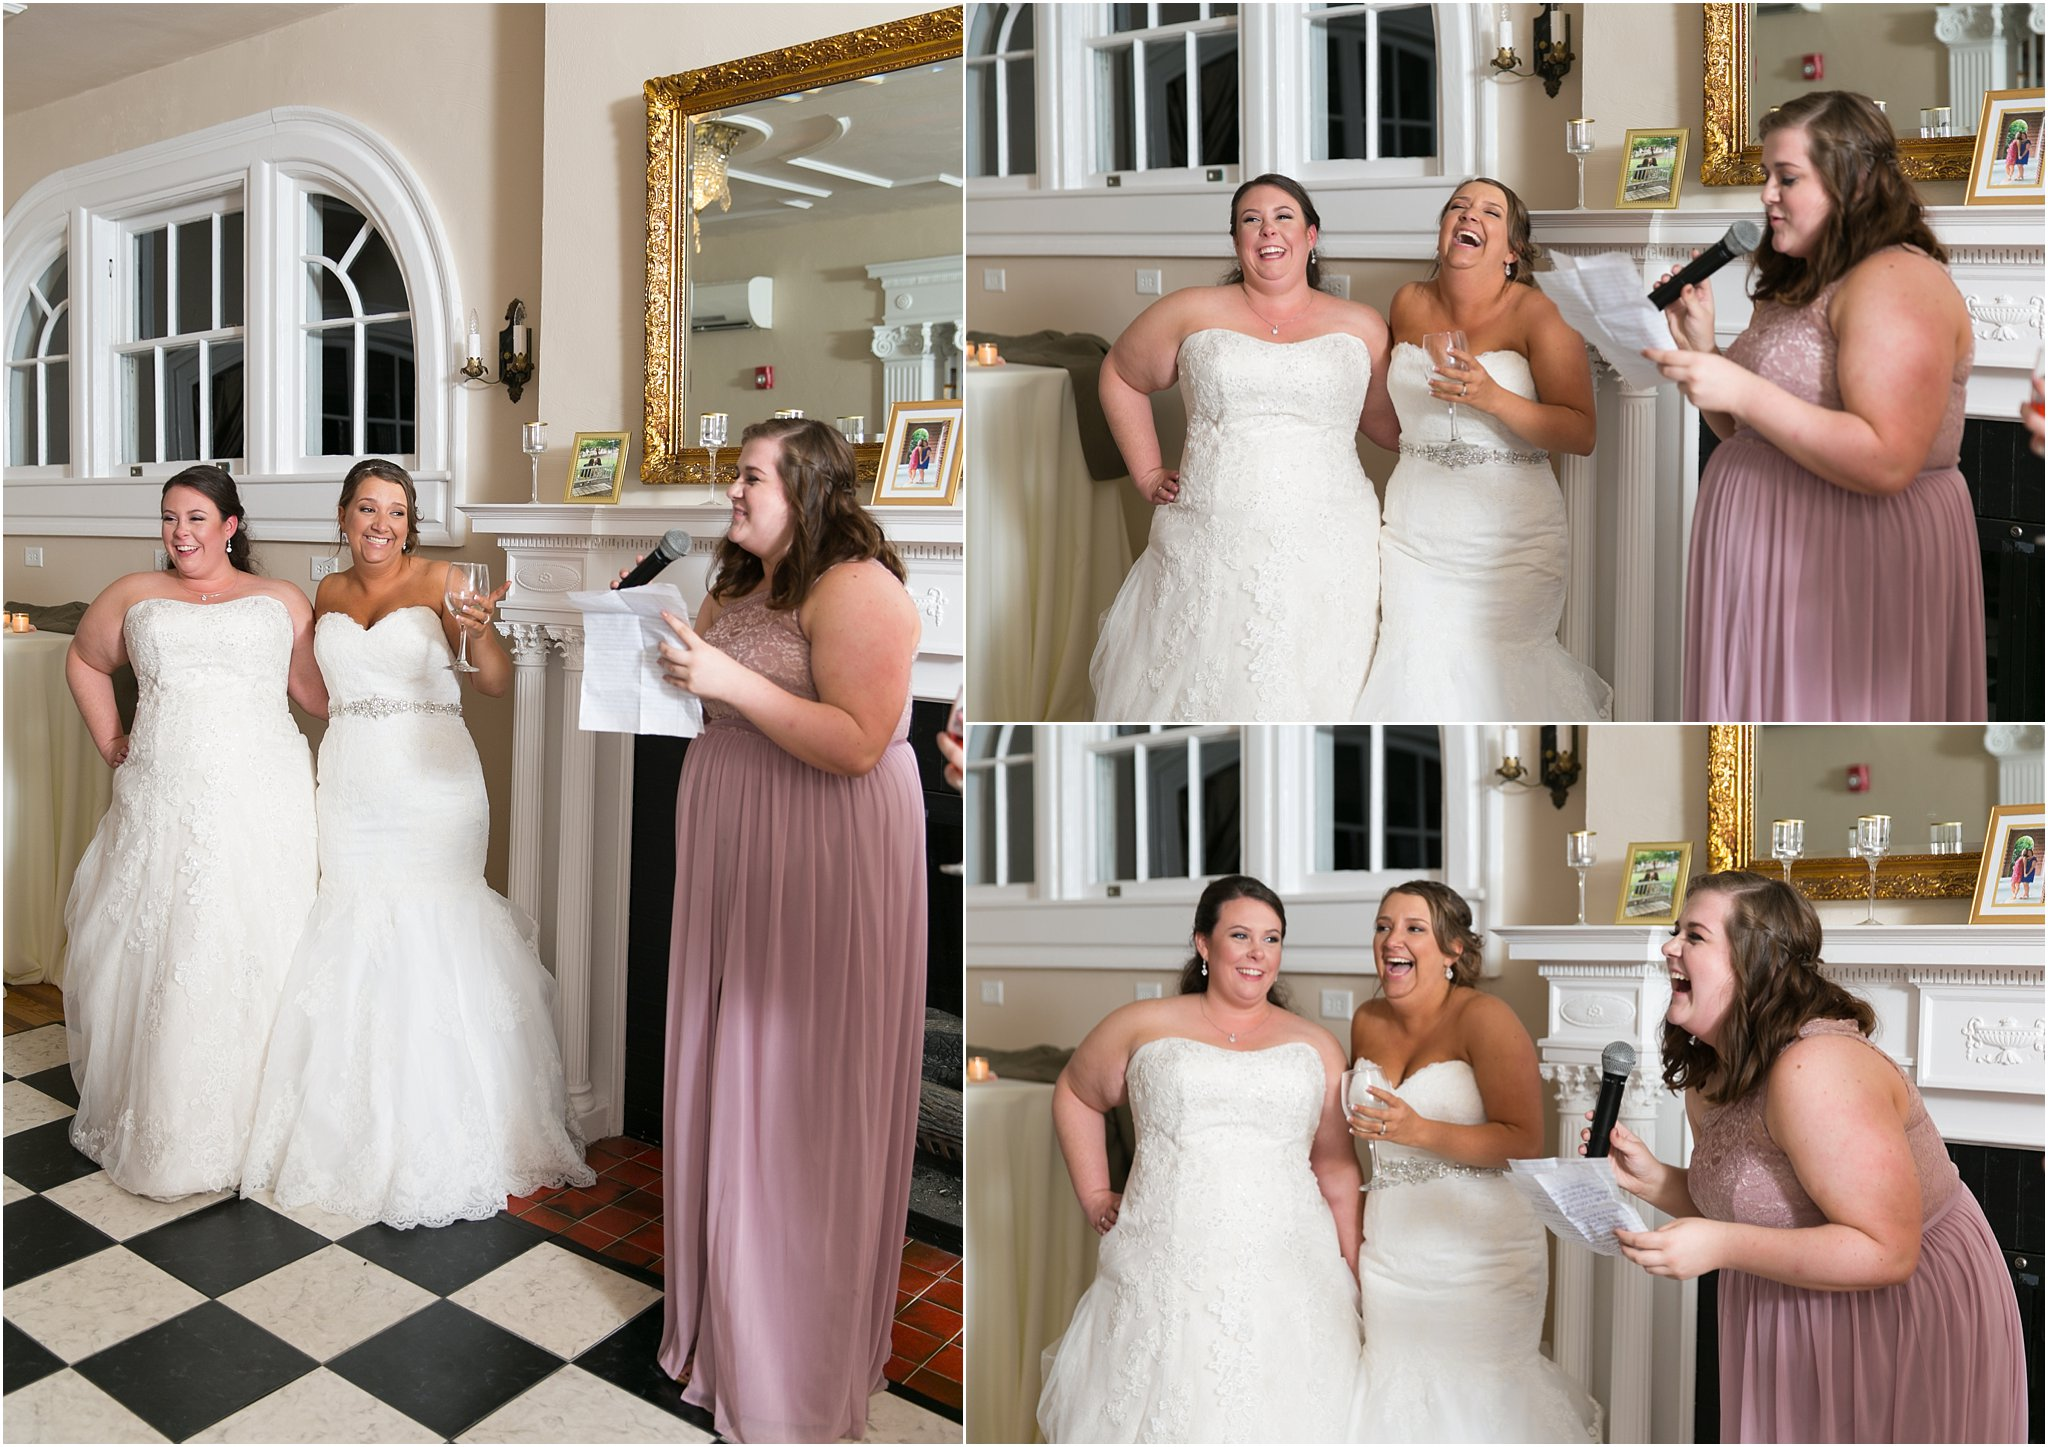 jessica_ryan_photography_wedding_suffolk_obici_house_wedding_0469